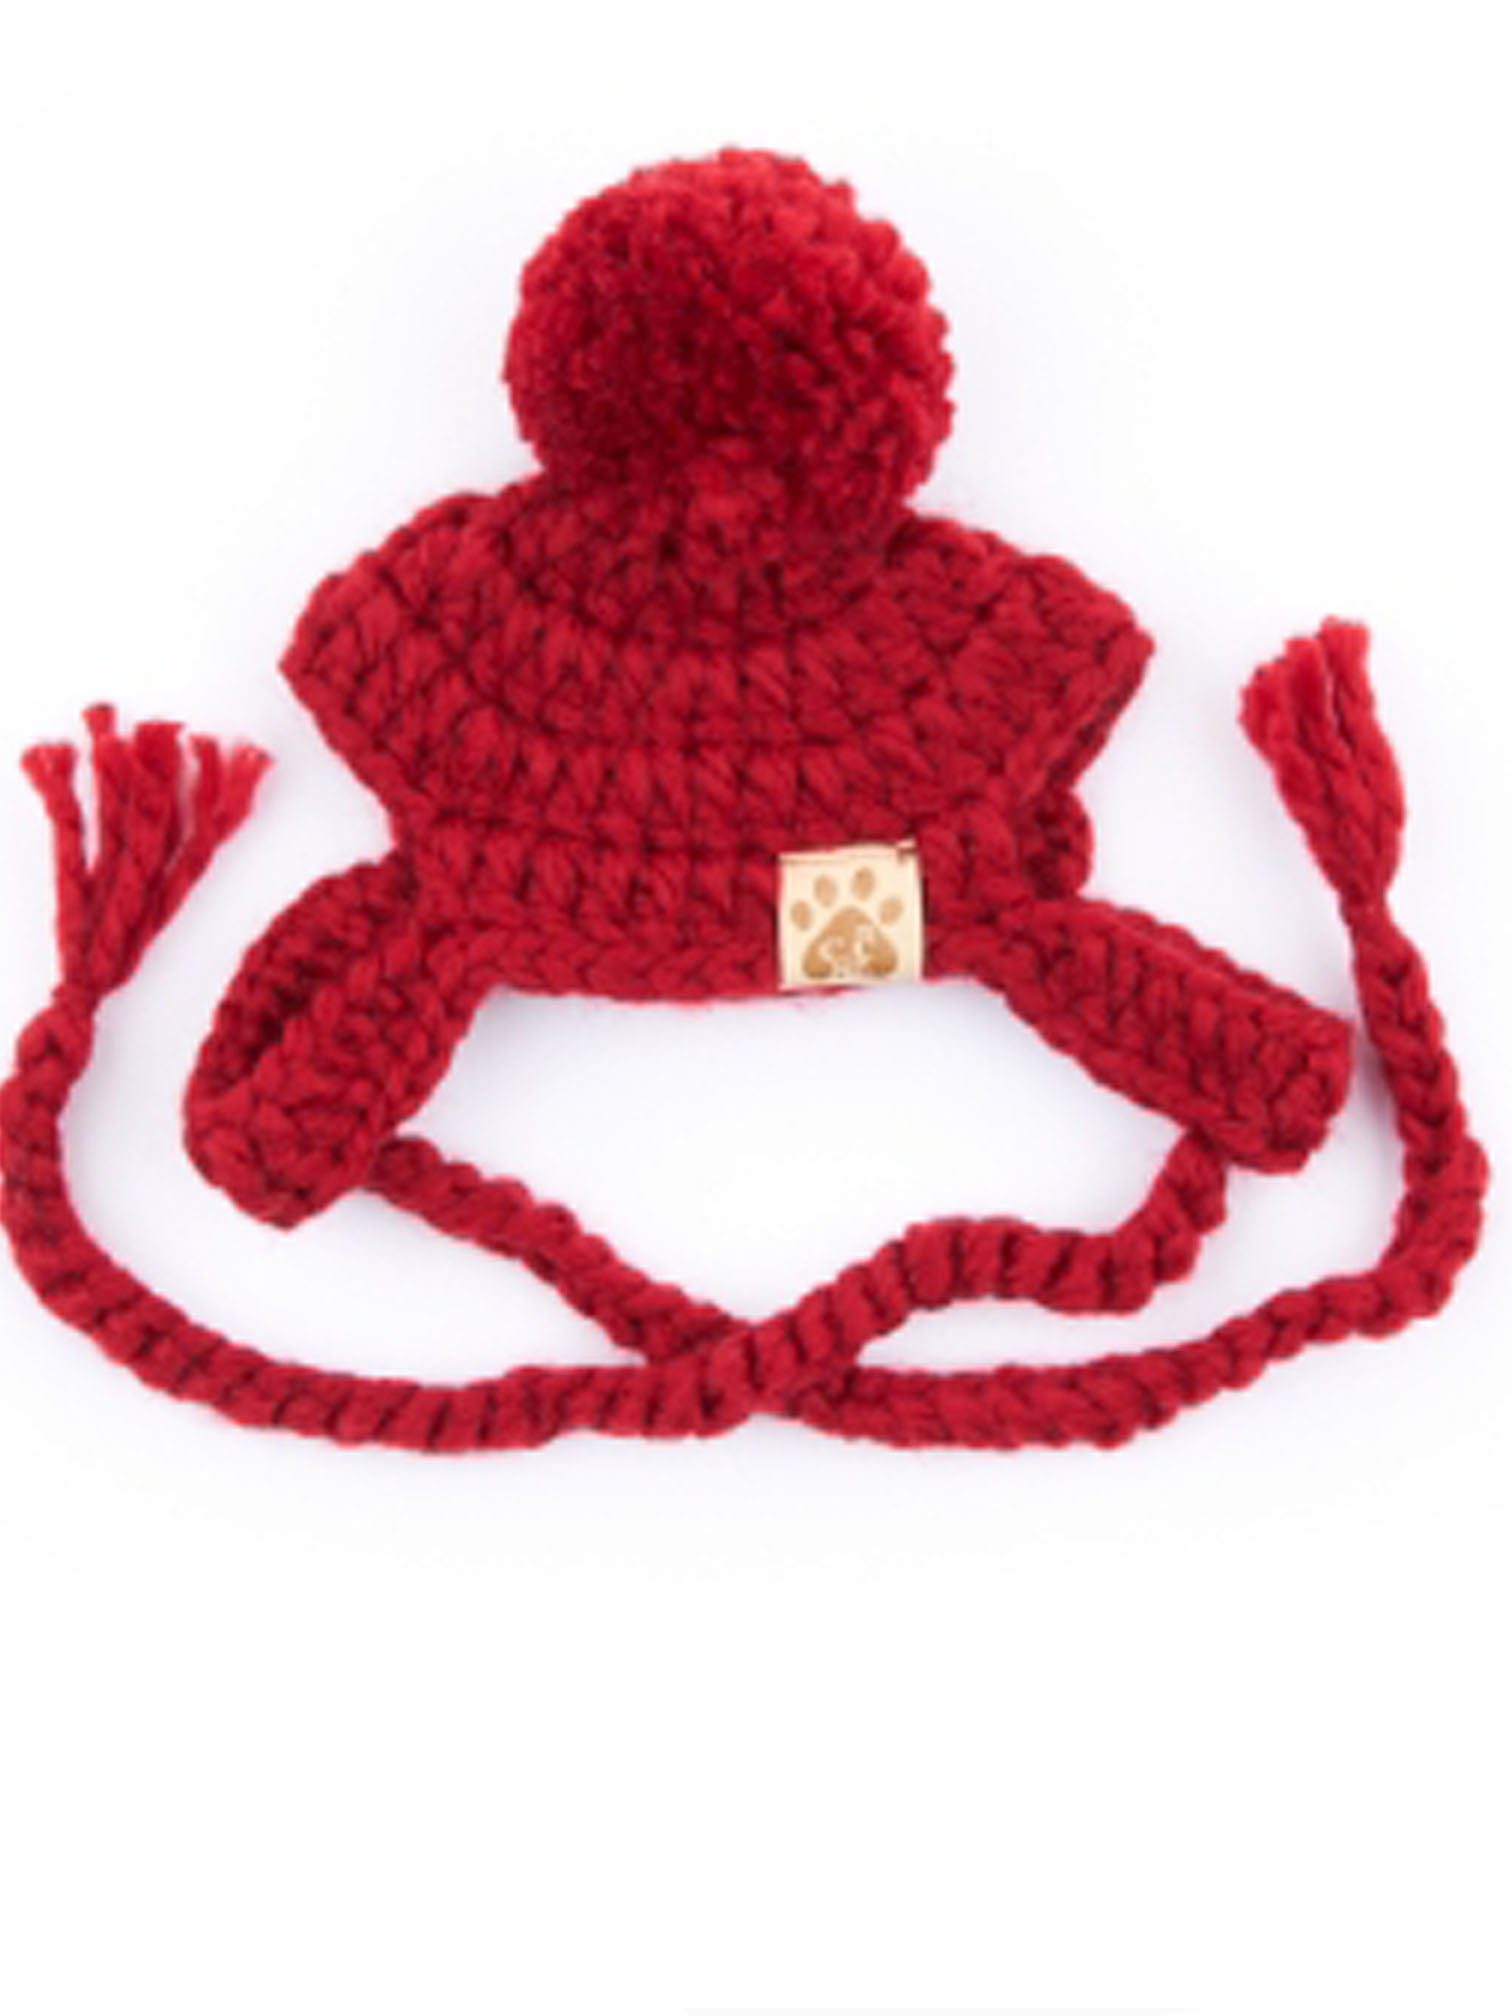 C.C Pet Beanies DH-1 Red